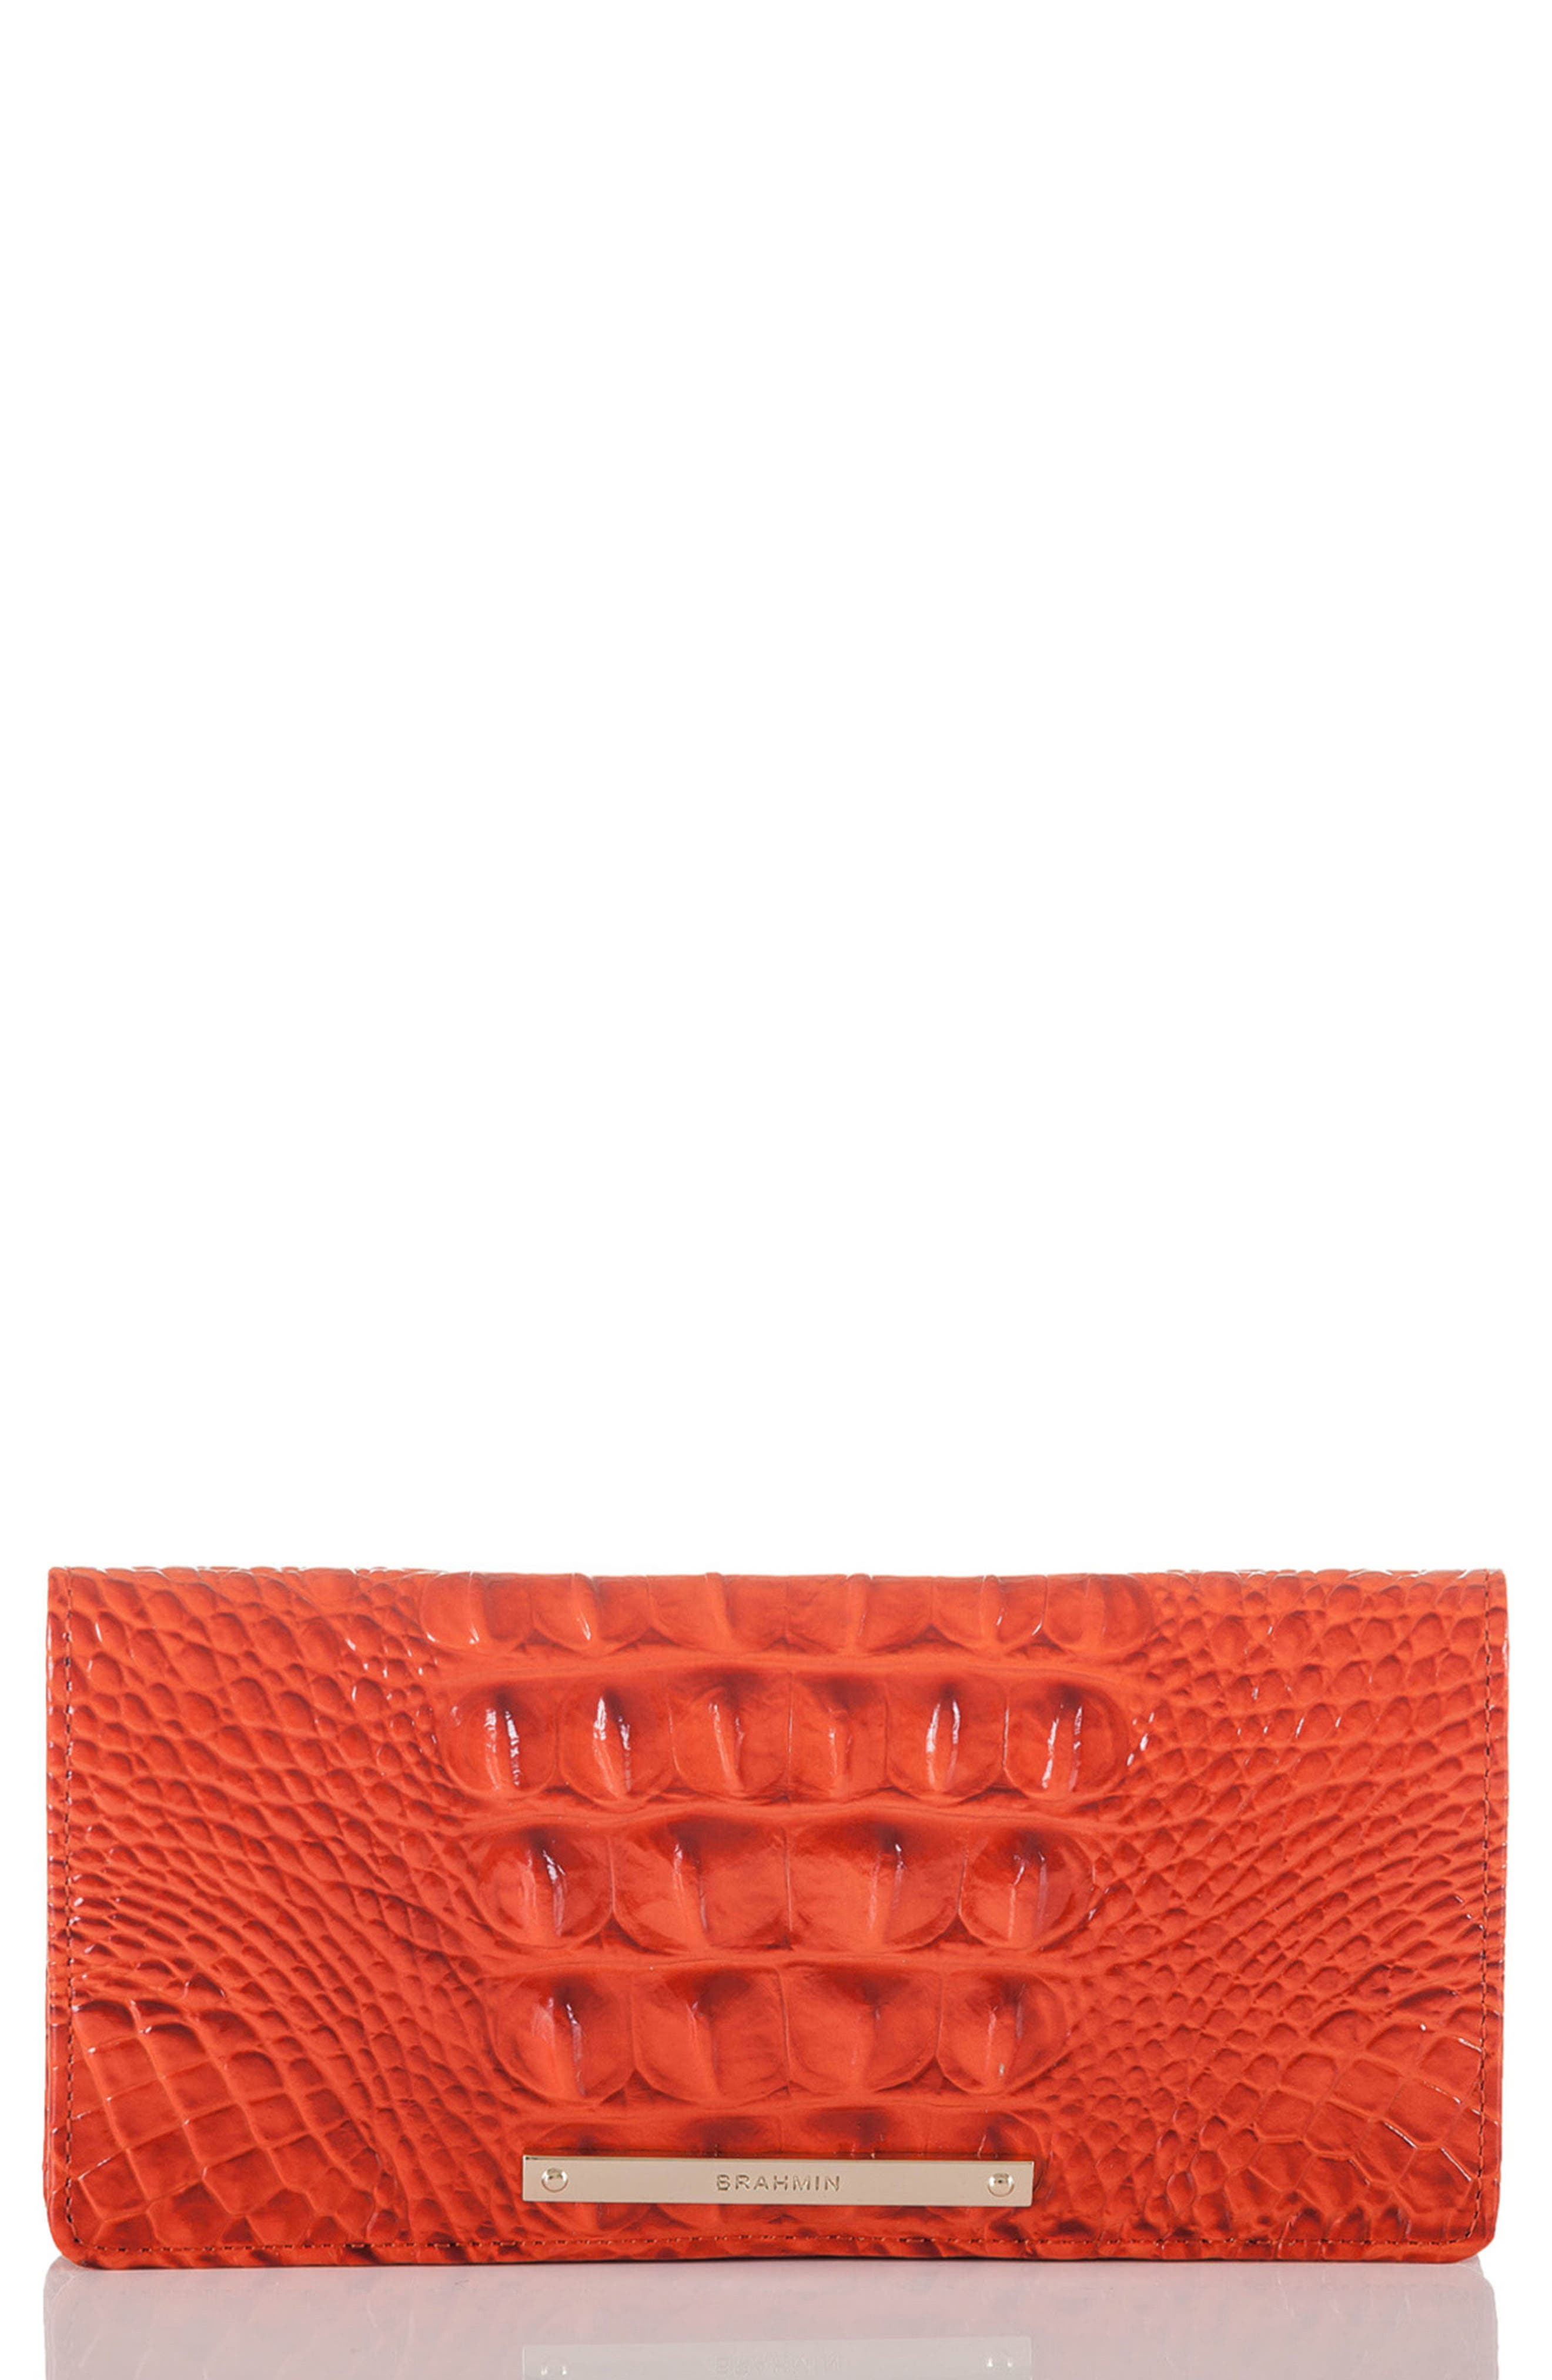 'Ady' Croc Embossed Continental Wallet,                             Main thumbnail 1, color,                             AMARYLLIS